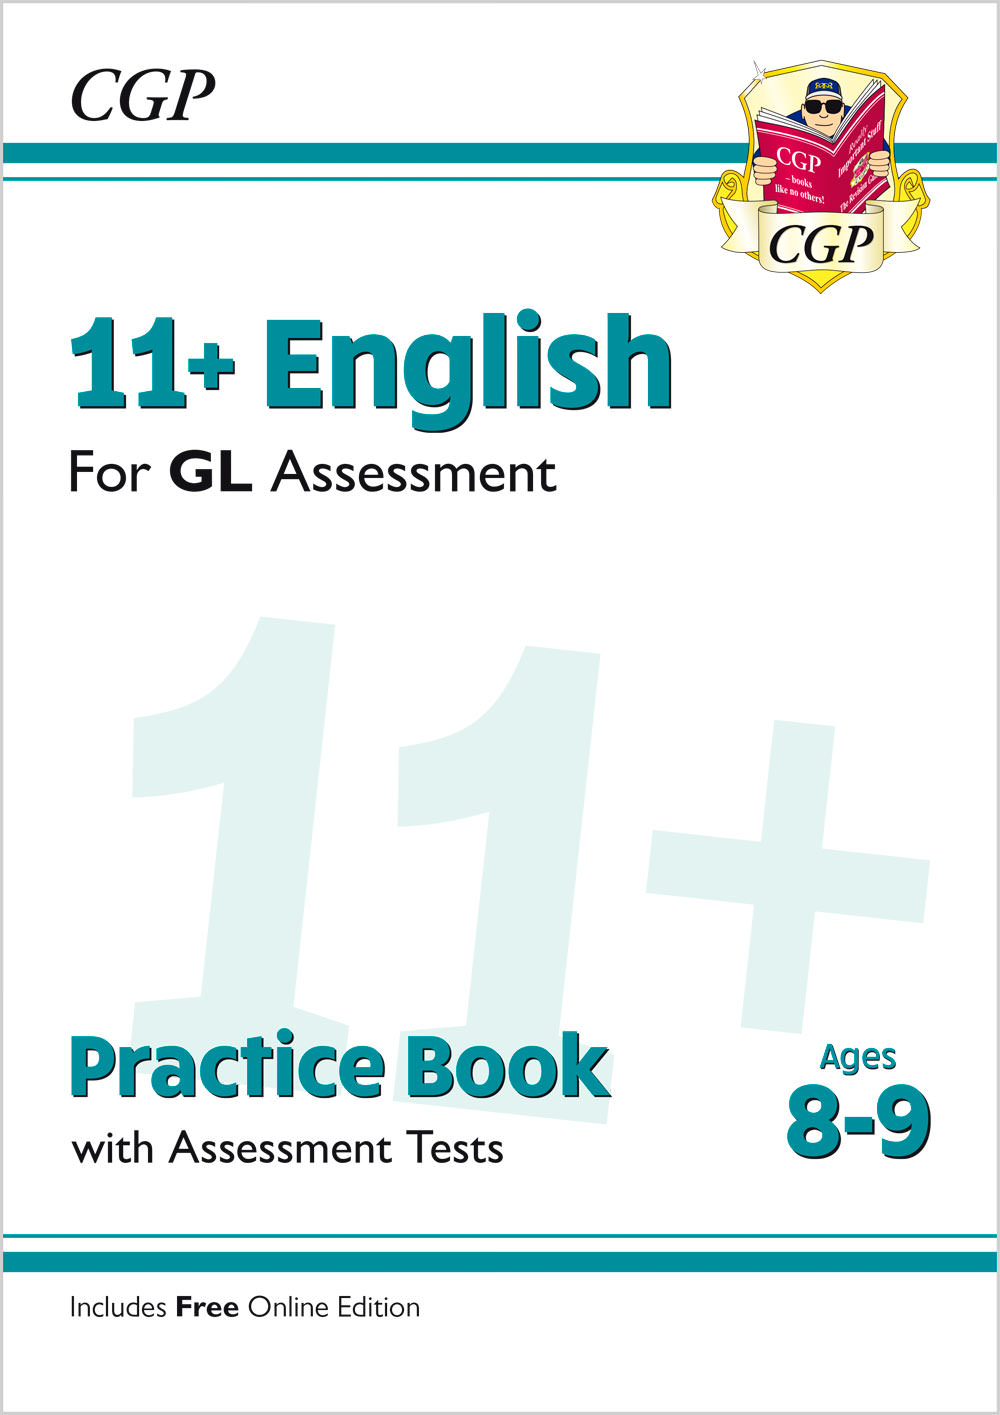 E4QE2 - New 11+ GL English Practice Book & Assessment Tests - Ages 8-9 (with Online Edition)